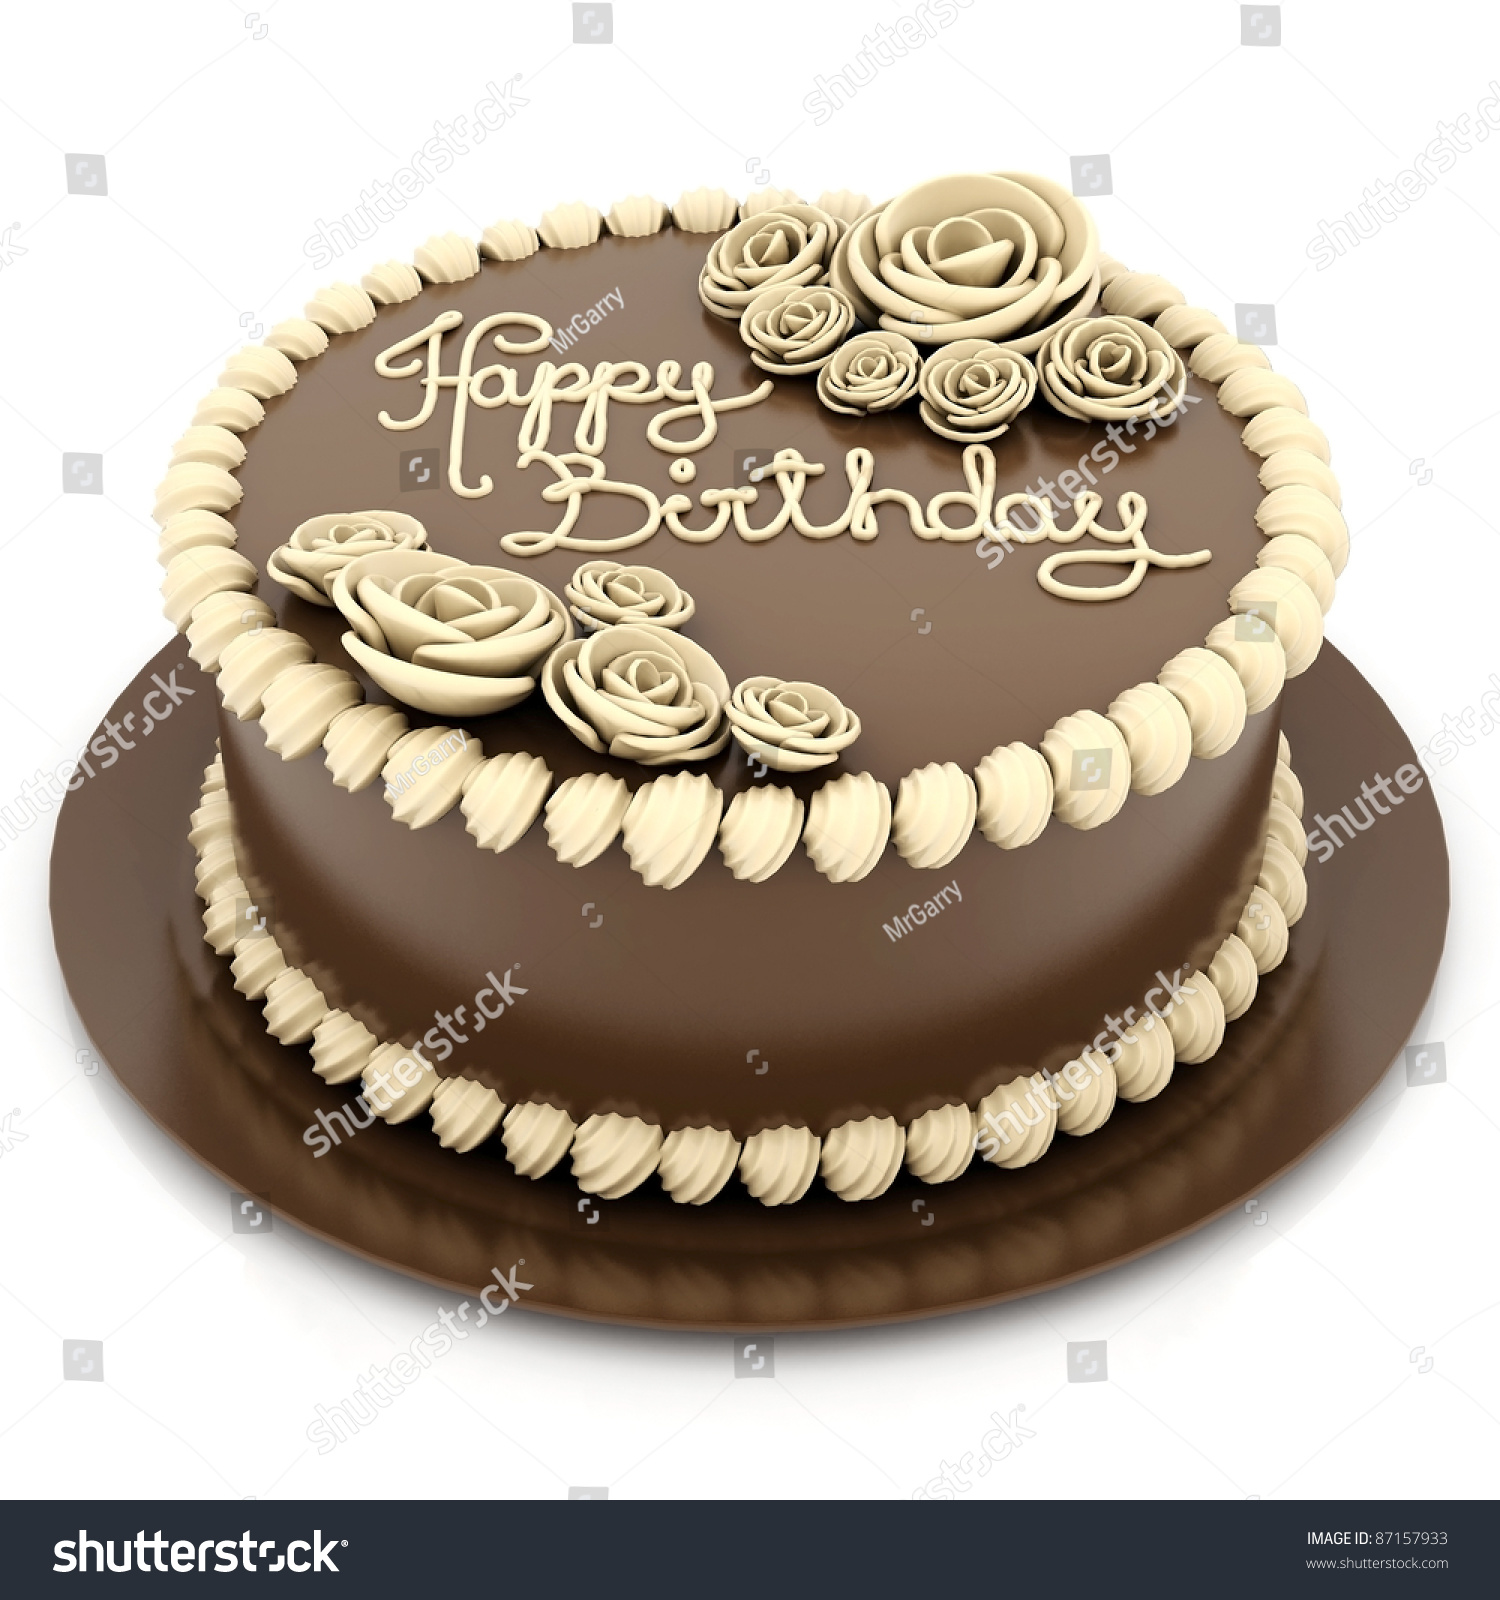 Beautiful Cake On White Background Stock Illustration ...